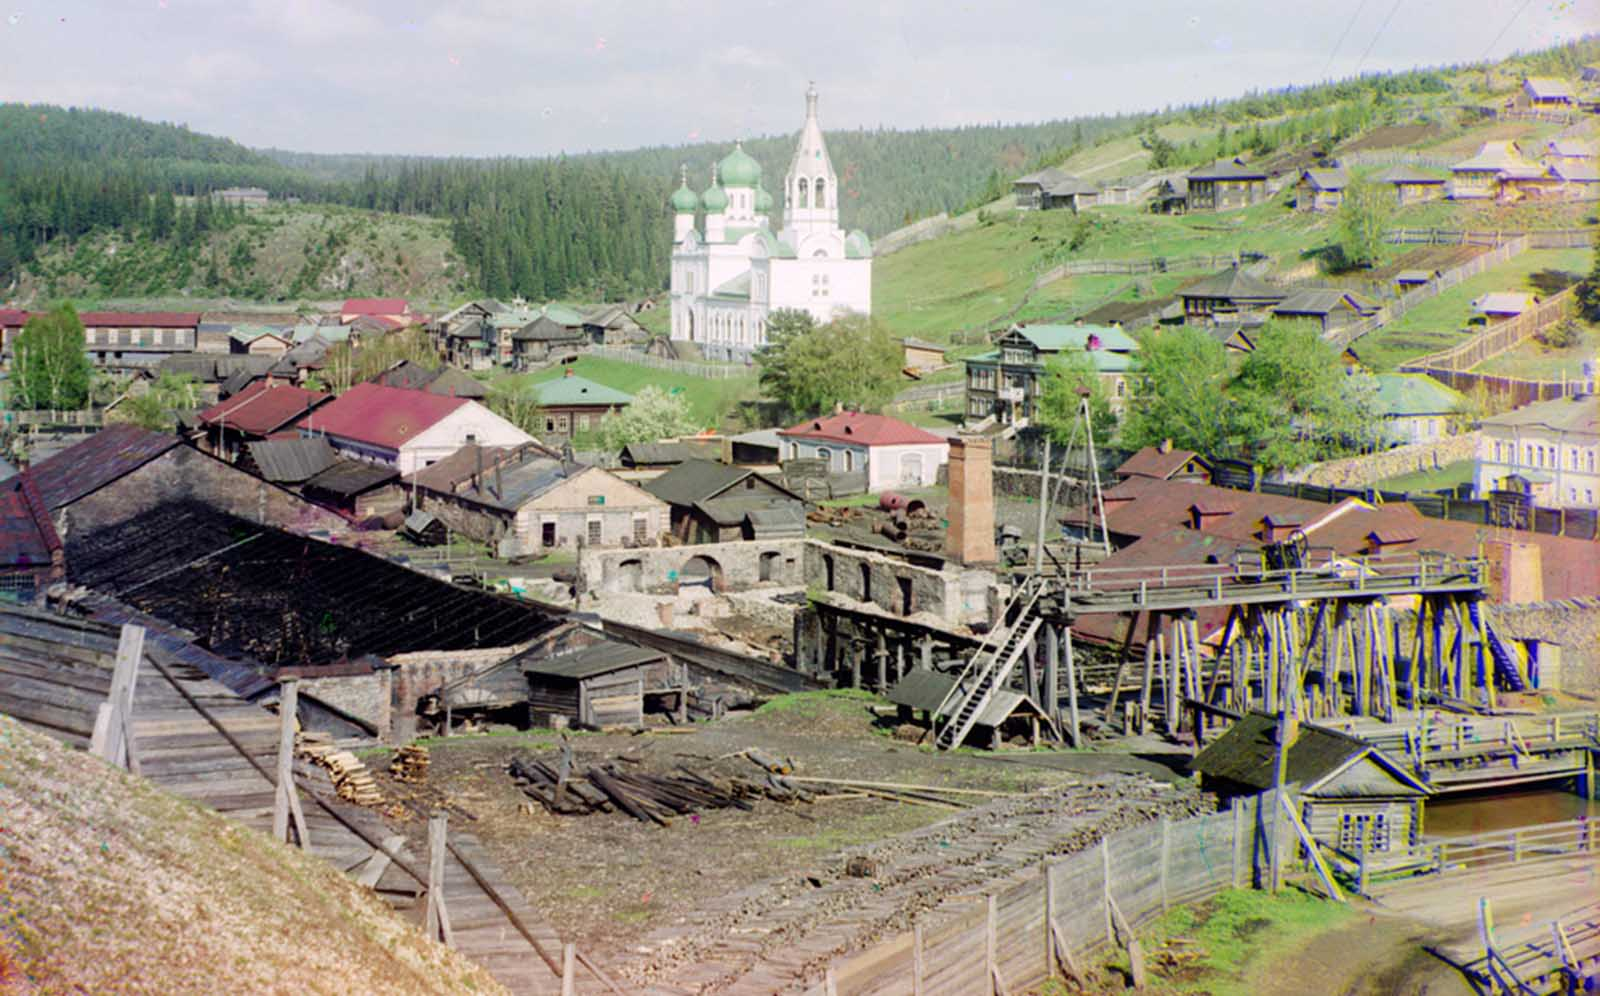 Factory in Kyn, Russia, belonging to Count S.A. Stroganov, 1912.